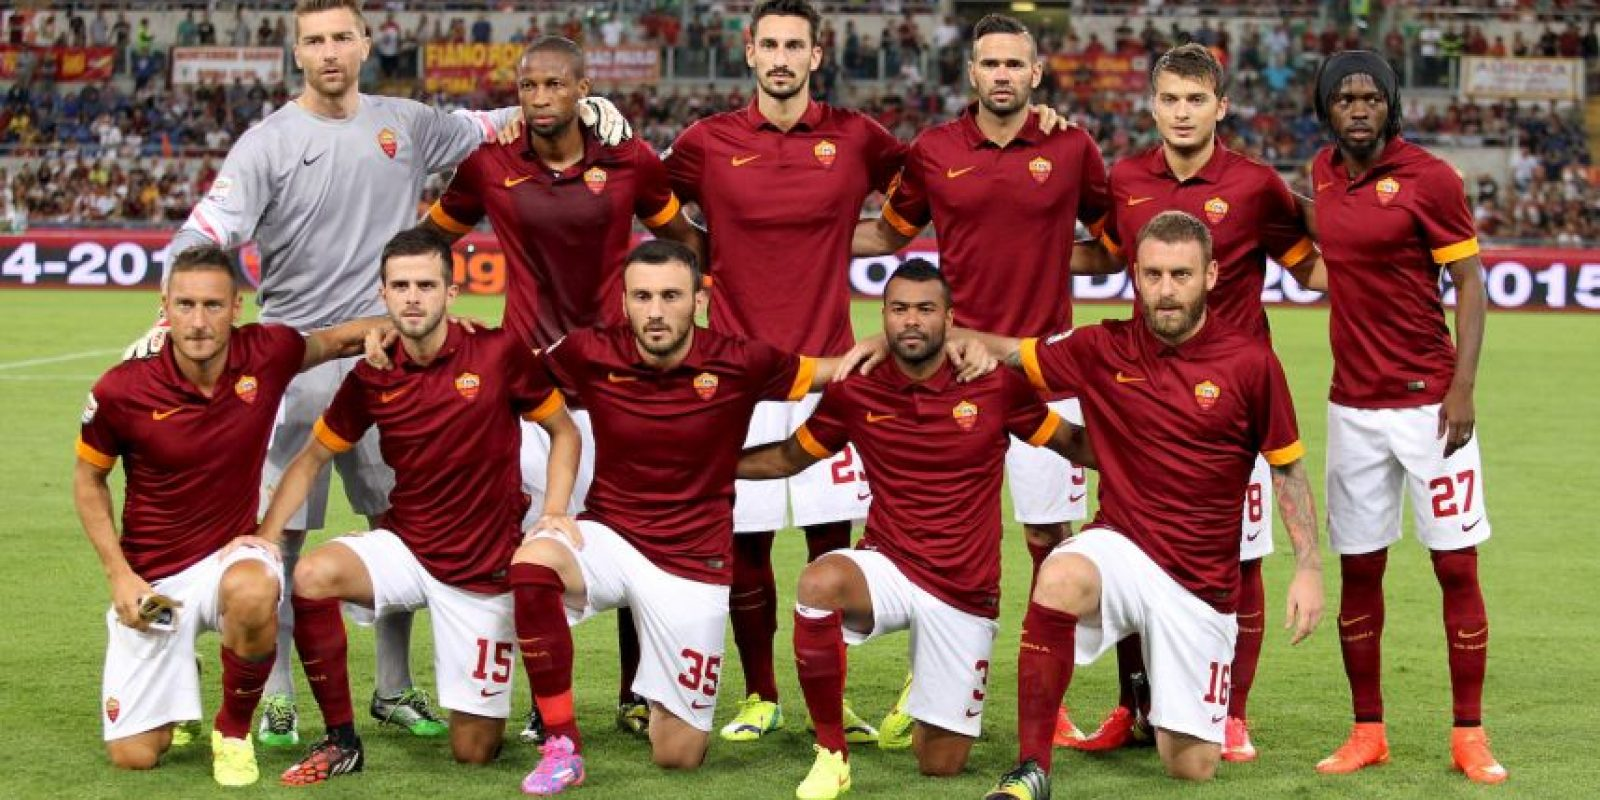 AS Roma (Subcampeón en 2014/2015) Foto: Getty Images